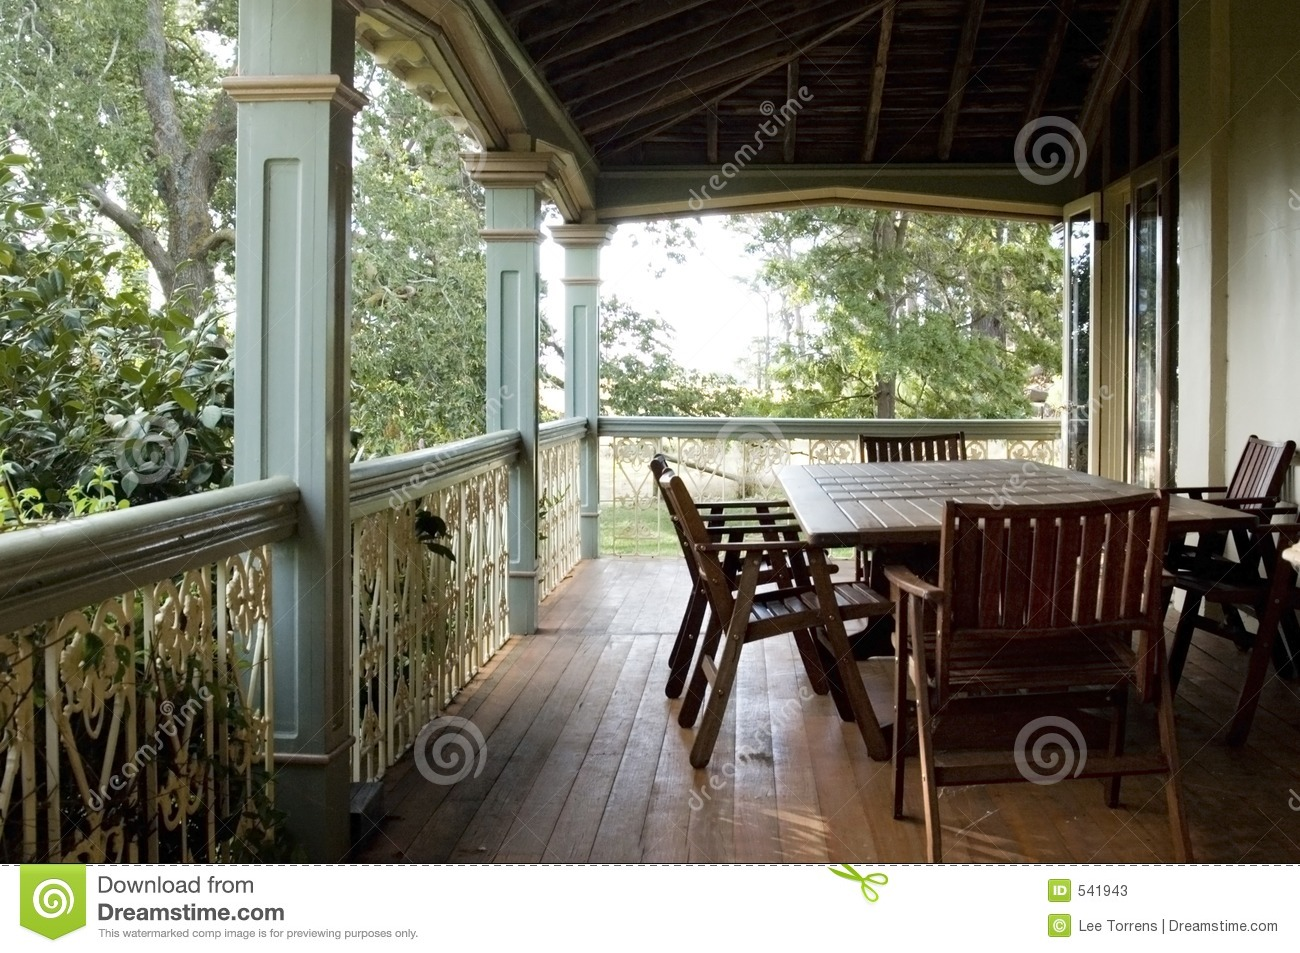 country veranda stock image image of brown family balcony 541943. Black Bedroom Furniture Sets. Home Design Ideas